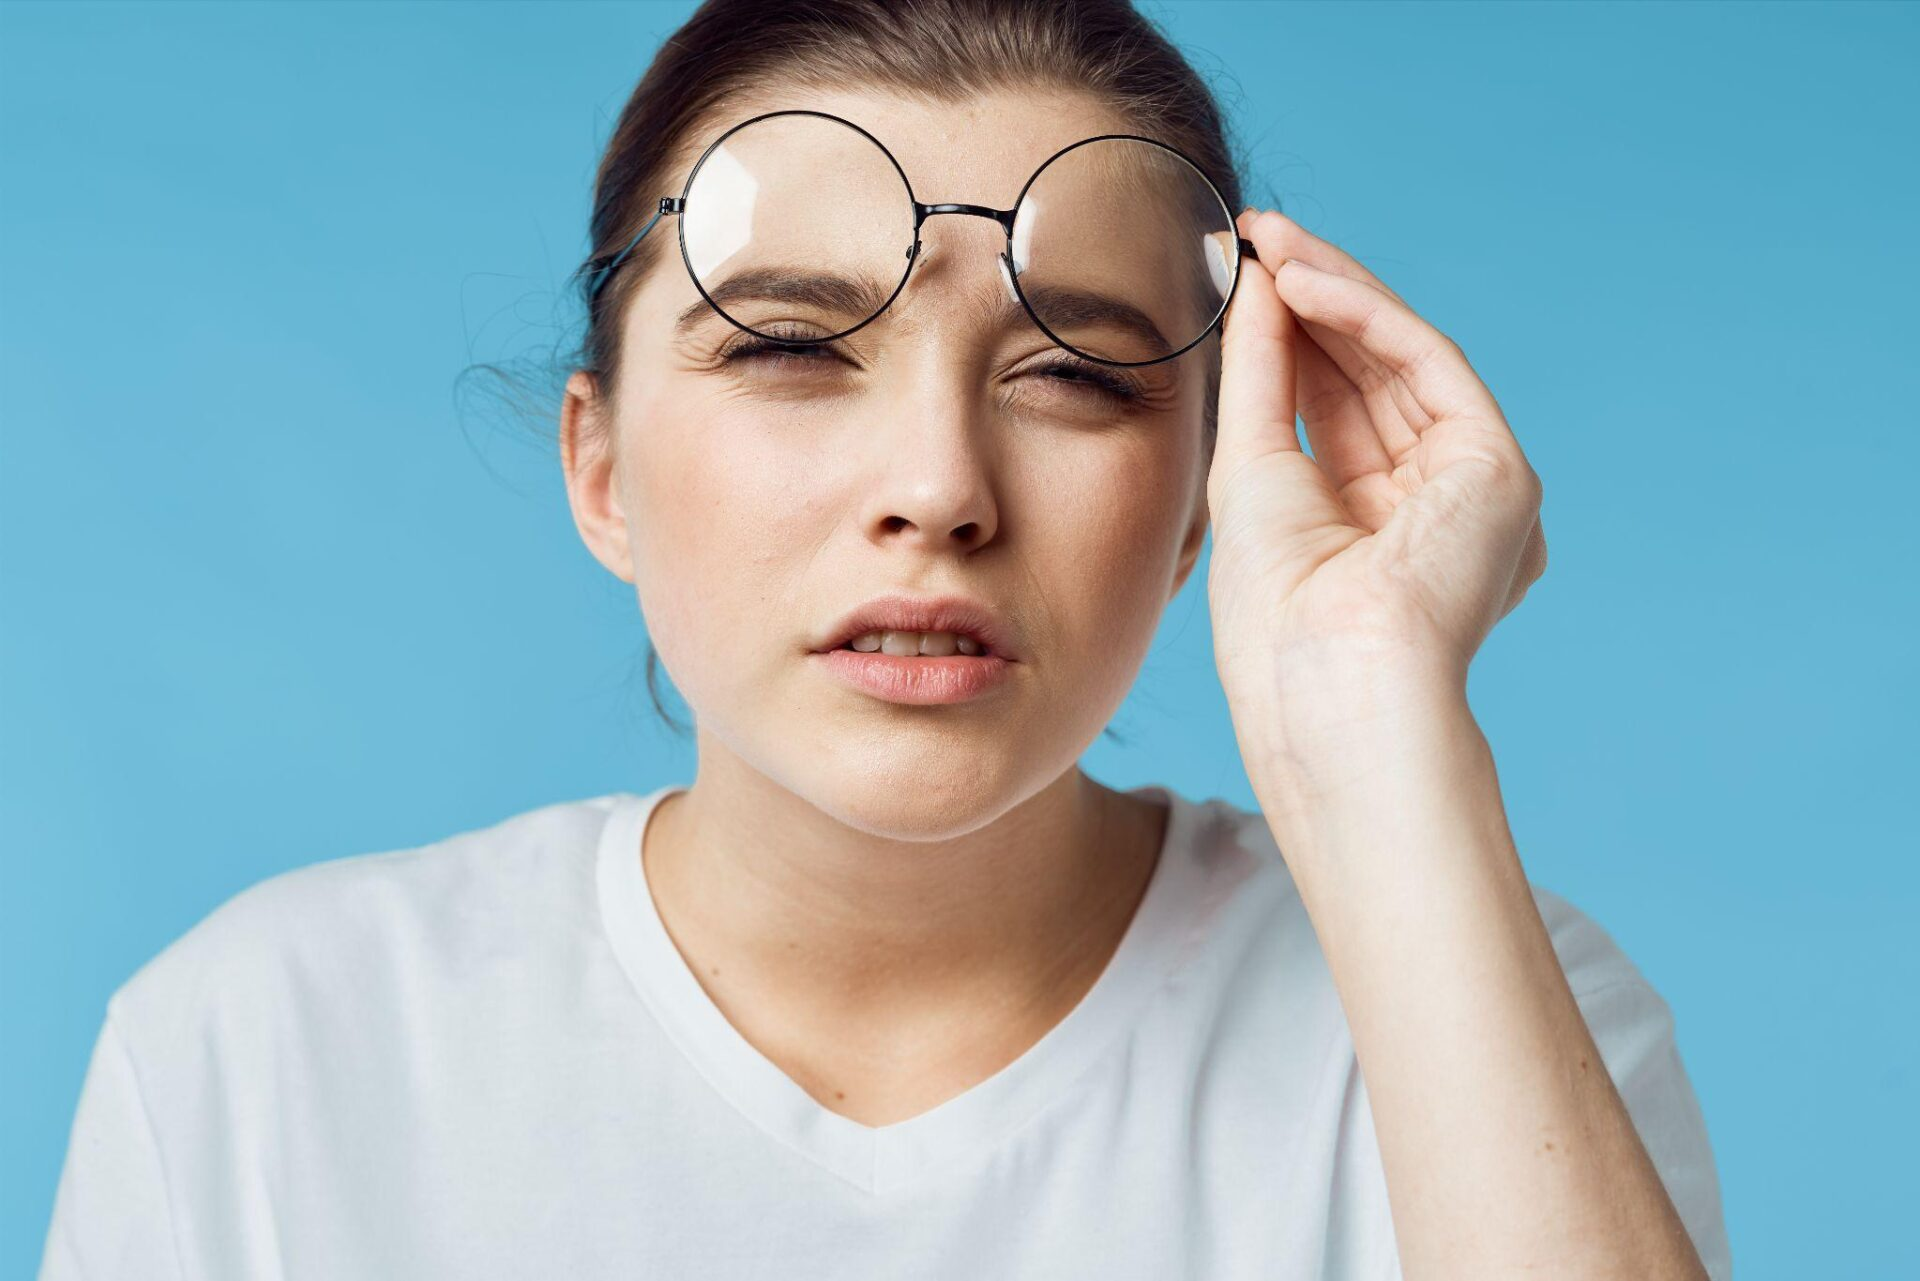 The woman's eyes narrowed vision problems glasses in her hand